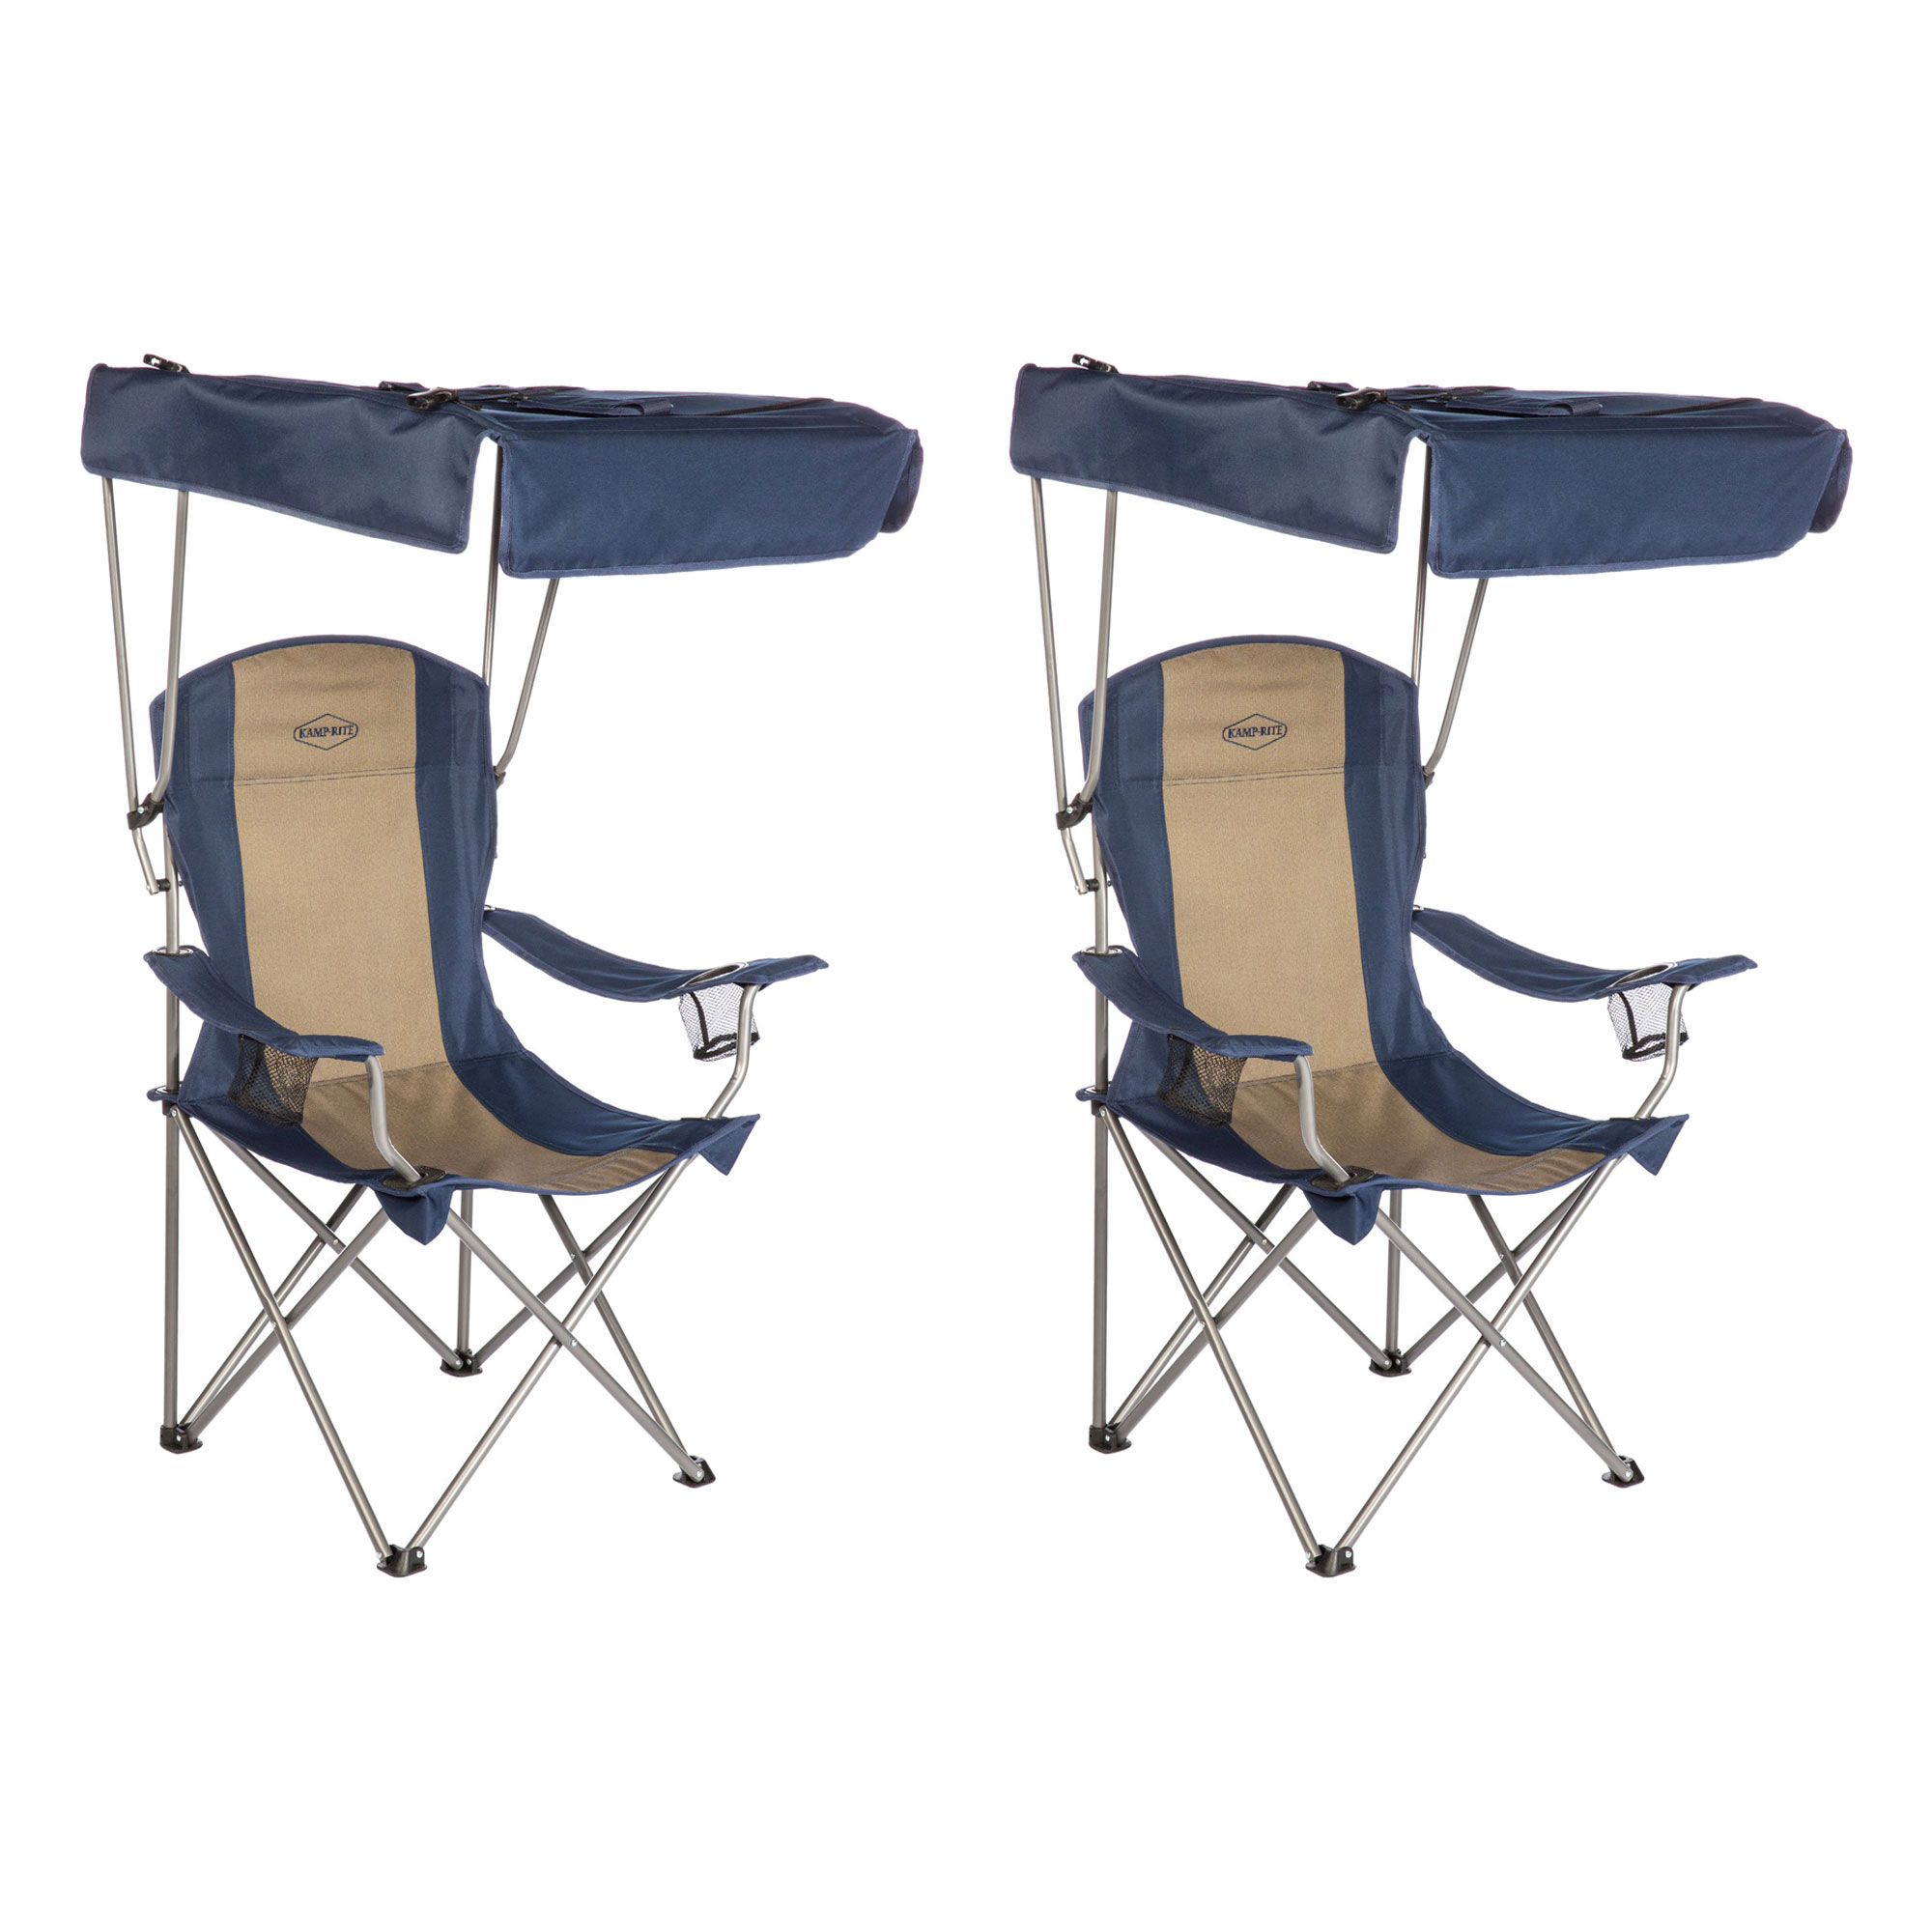 Enjoyable Chairs Kamp Rite Chair With Shade Canopy Cc463 Dailytribune Chair Design For Home Dailytribuneorg